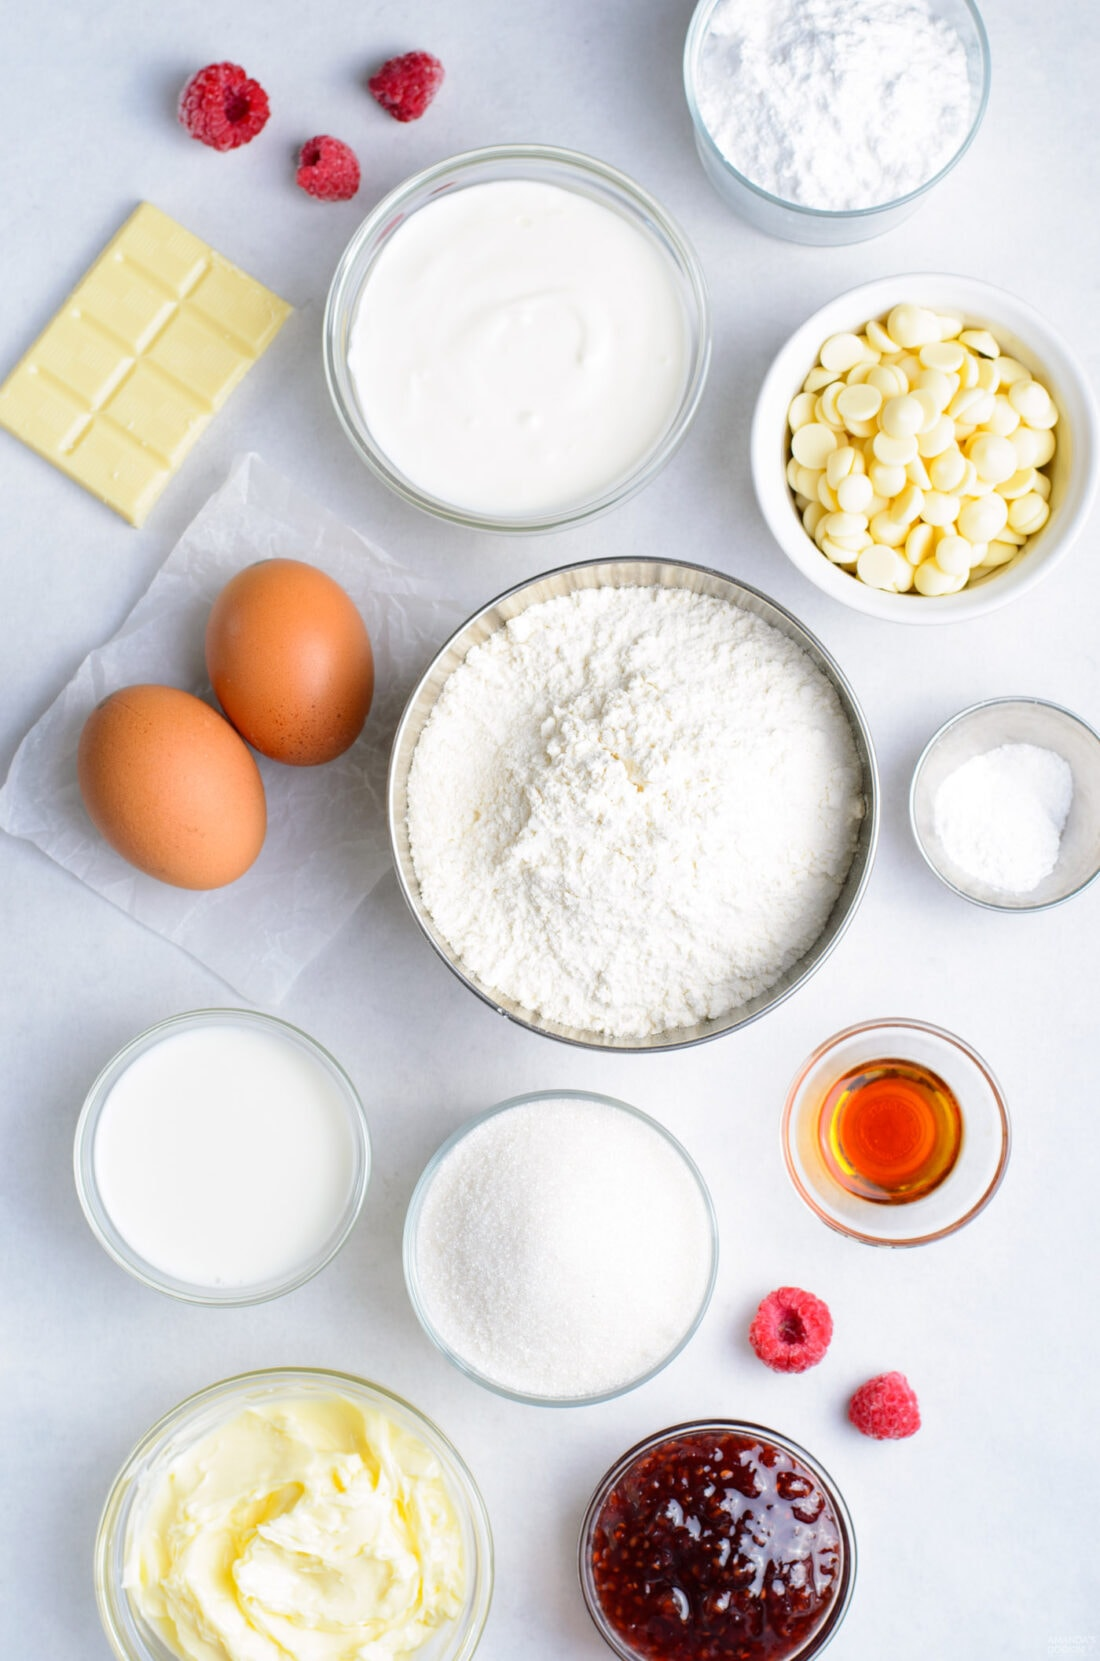 ingredients for making Raspberry White Chocolate Cupcakes